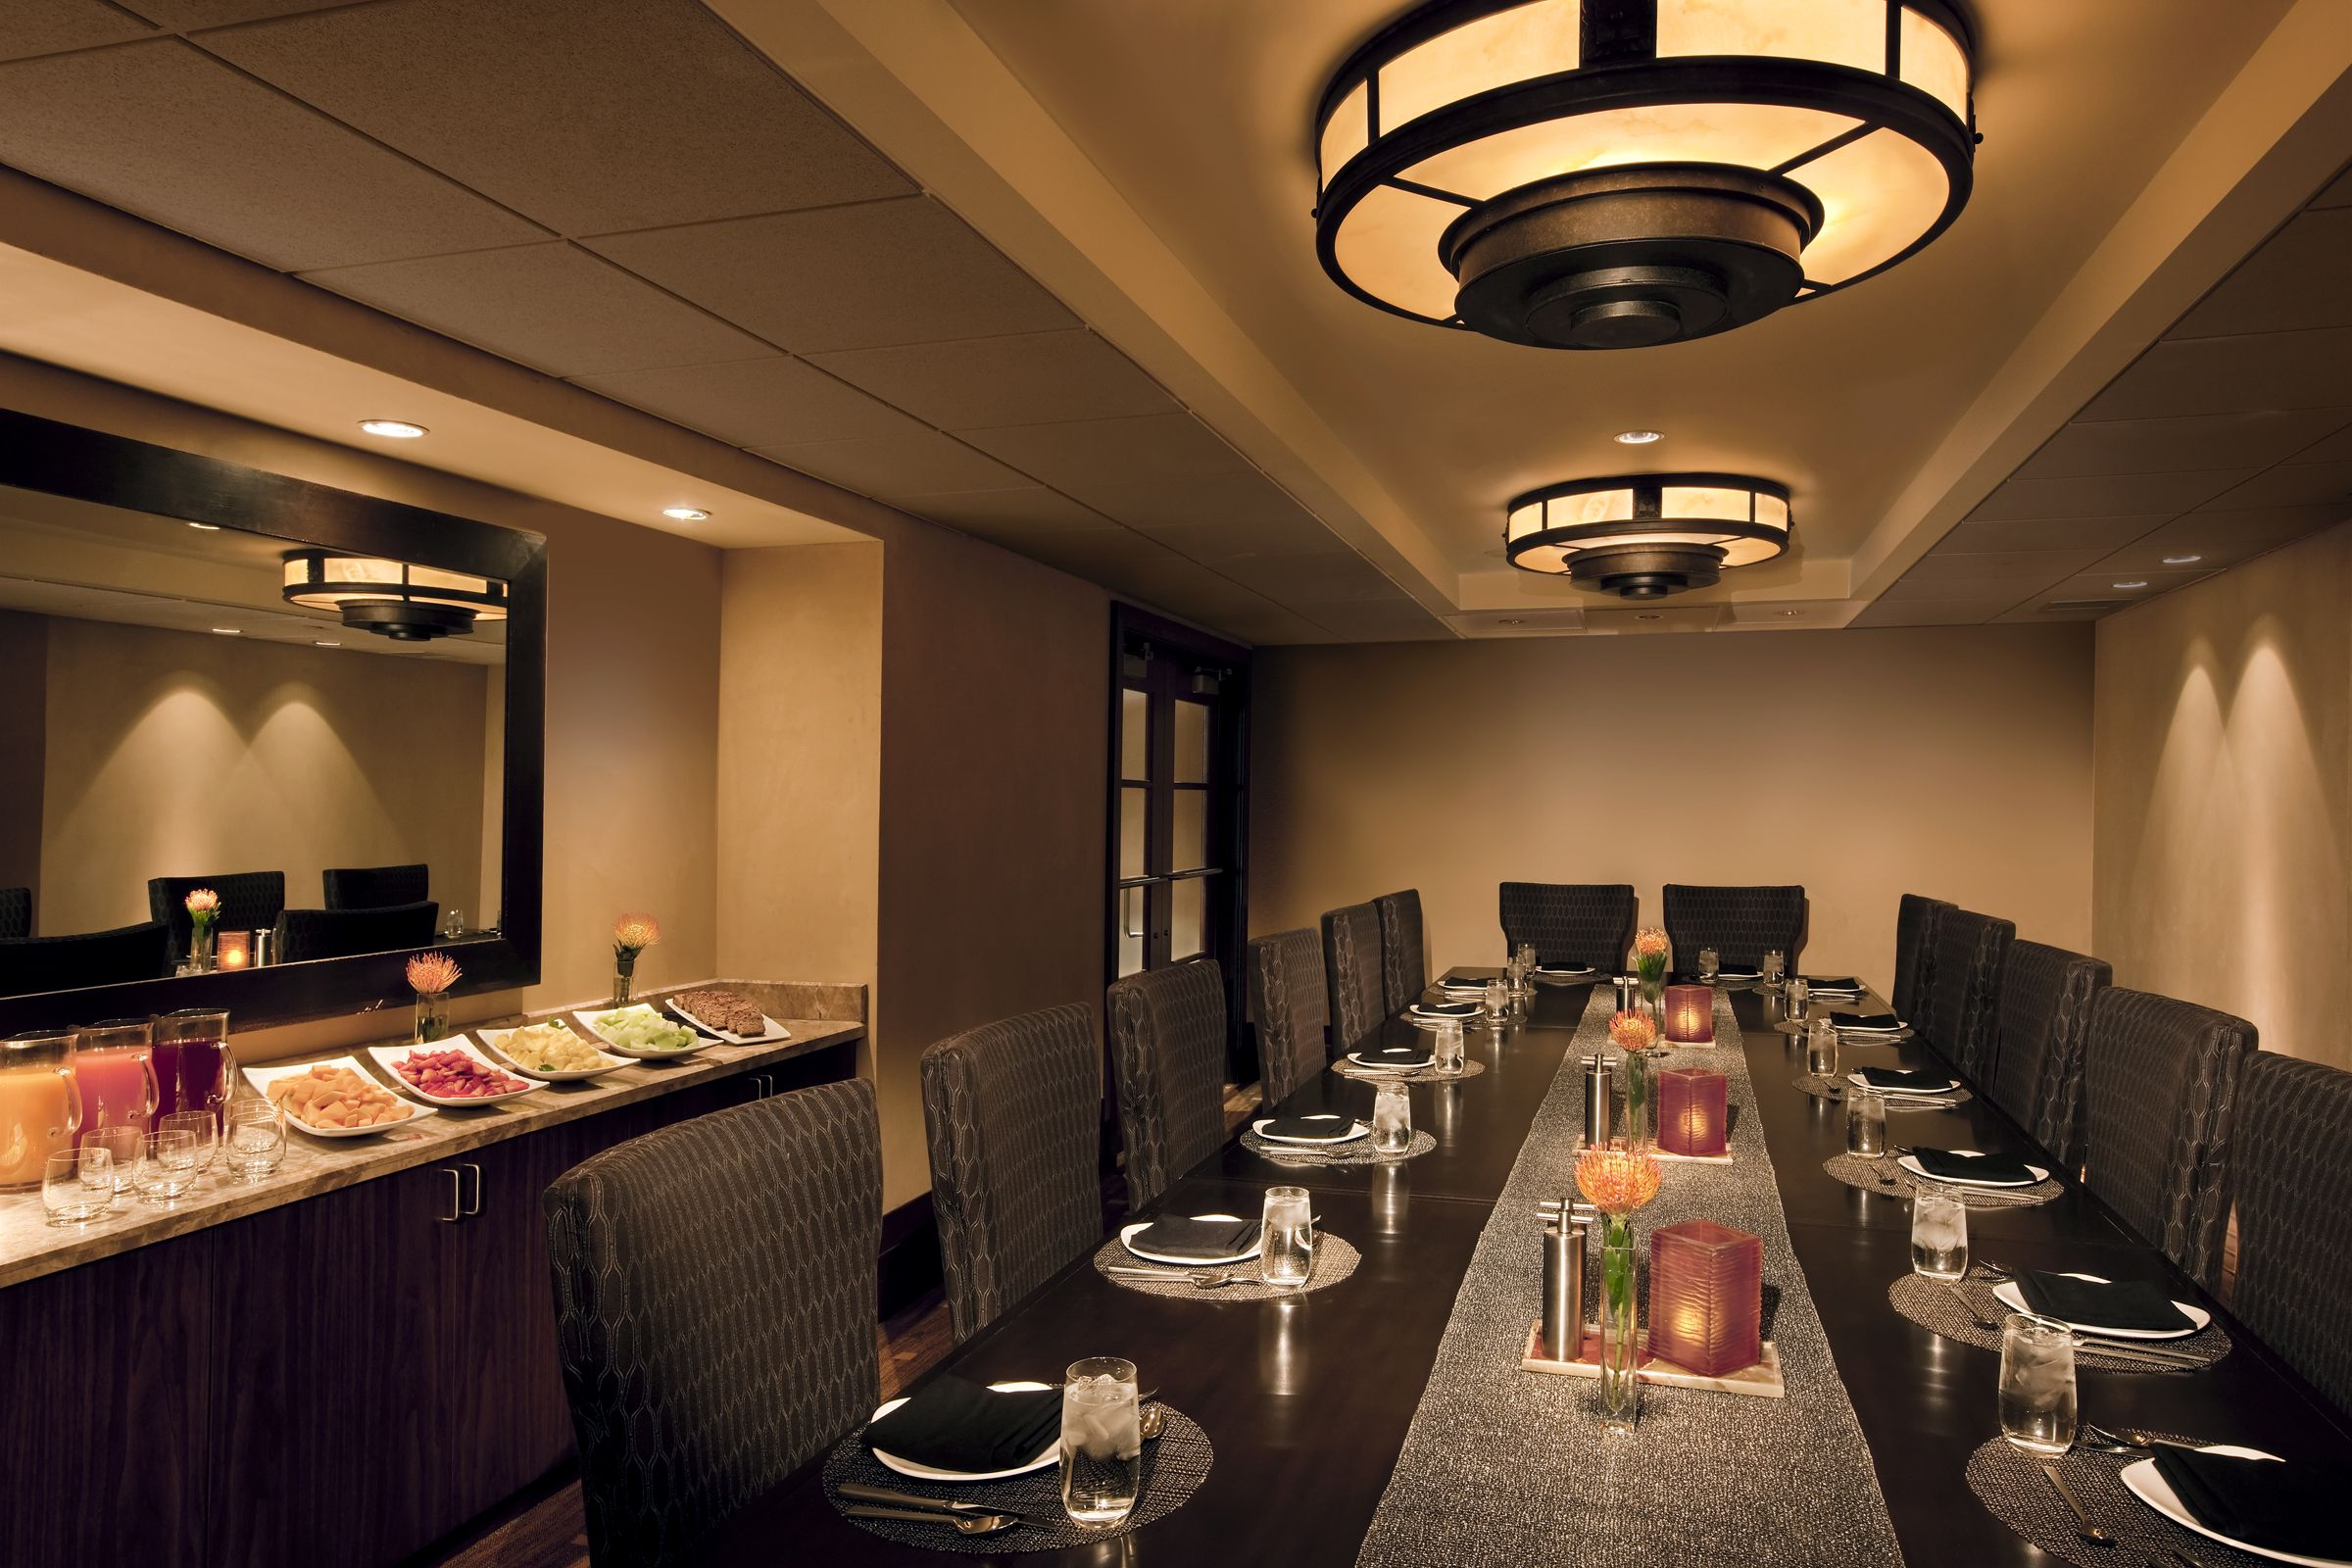 The Carillon Has Several Private Dining Rooms For Intimate Parties.